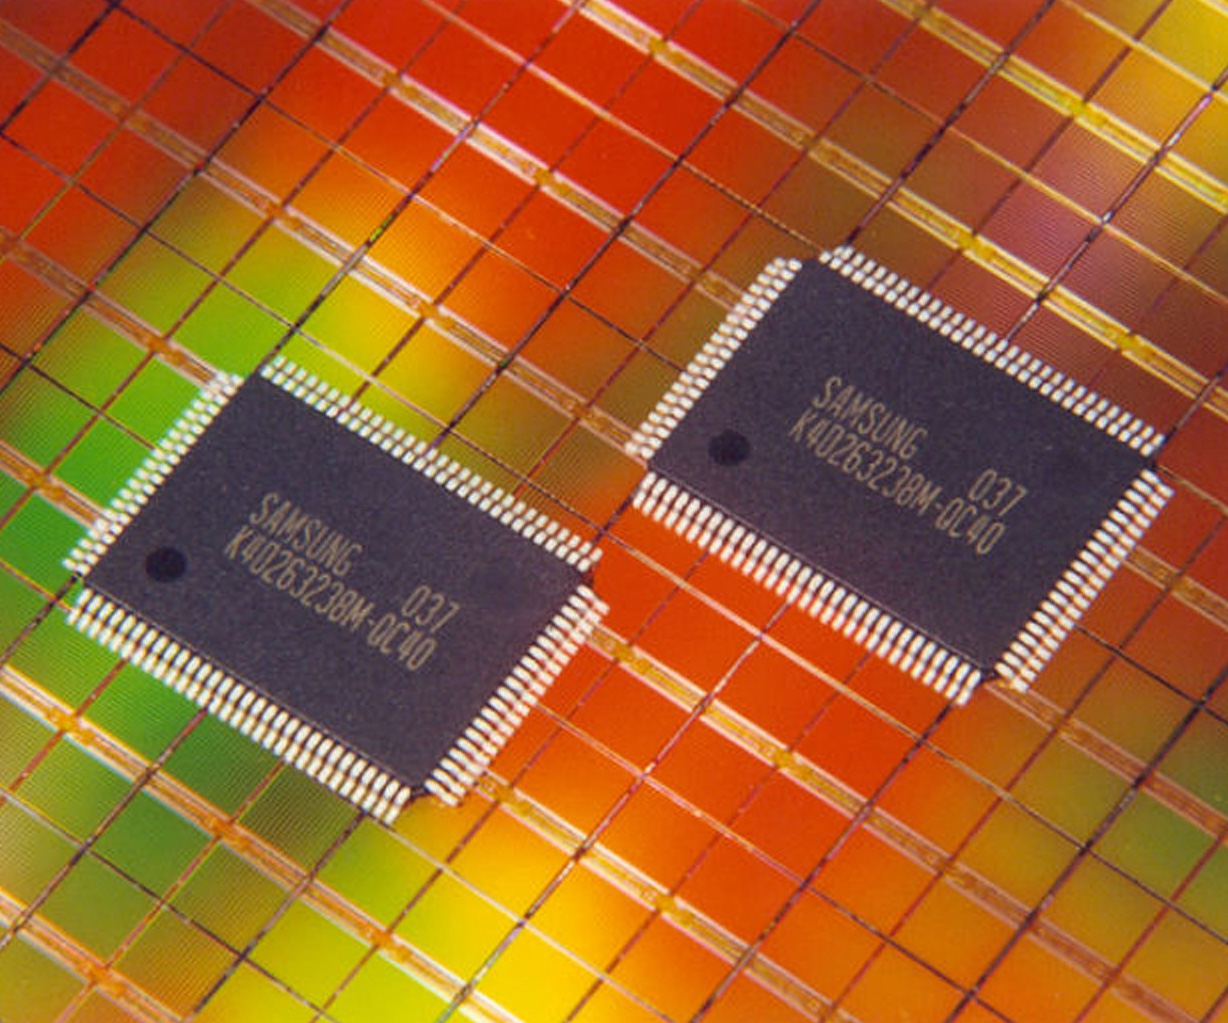 New GDDR6 RAM could hit graphics cards in 2018